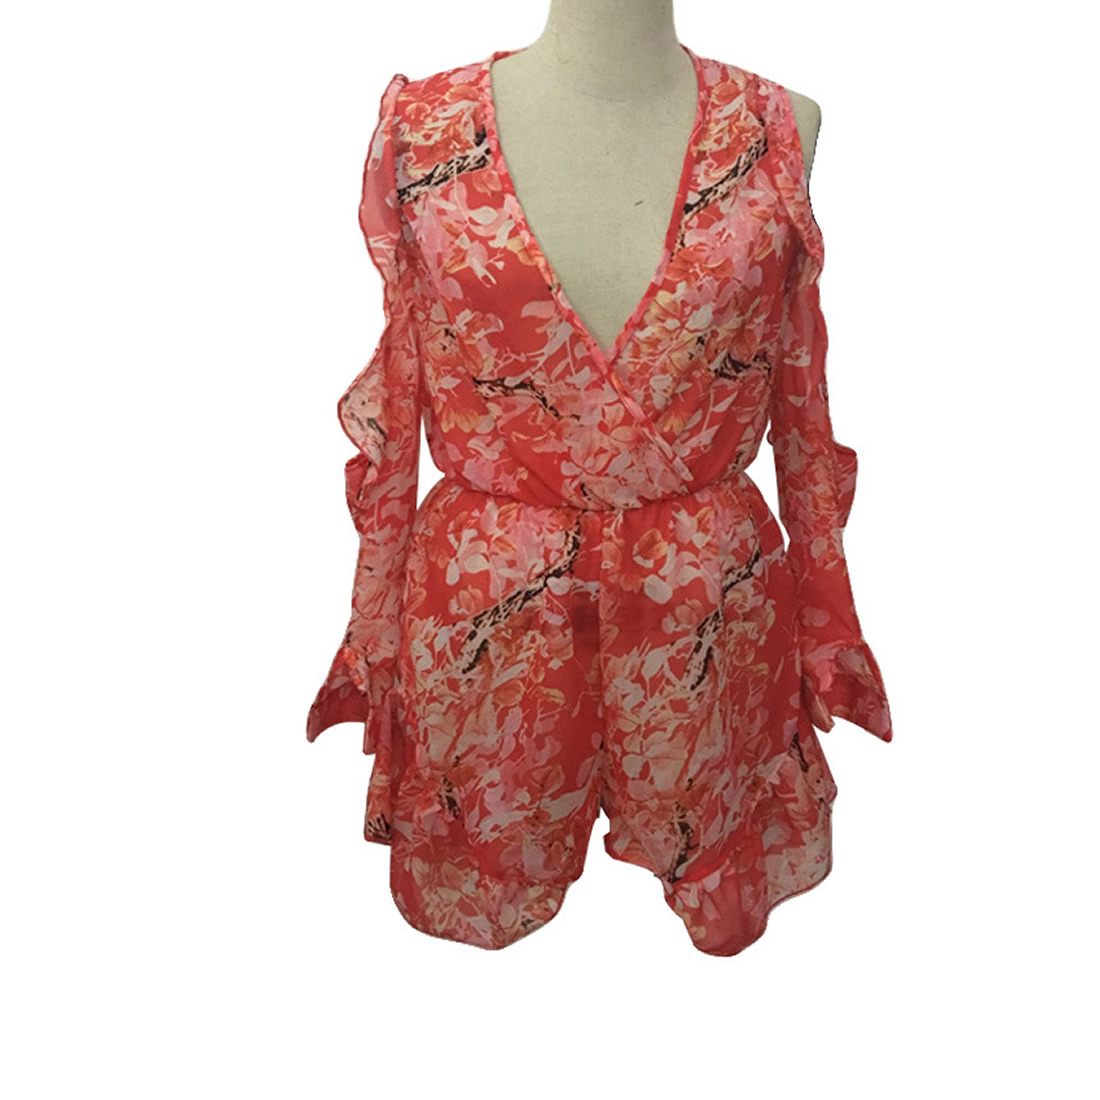 08ec8f3db2b2 Shorts Rompers Women Jumpsuits Summer Ladies Red Sexy Deep V Neck Short  Sleeve Floral Tie Waist Casual Jumpsuit Playsuits-in Rompers from Women s  Clothing ...